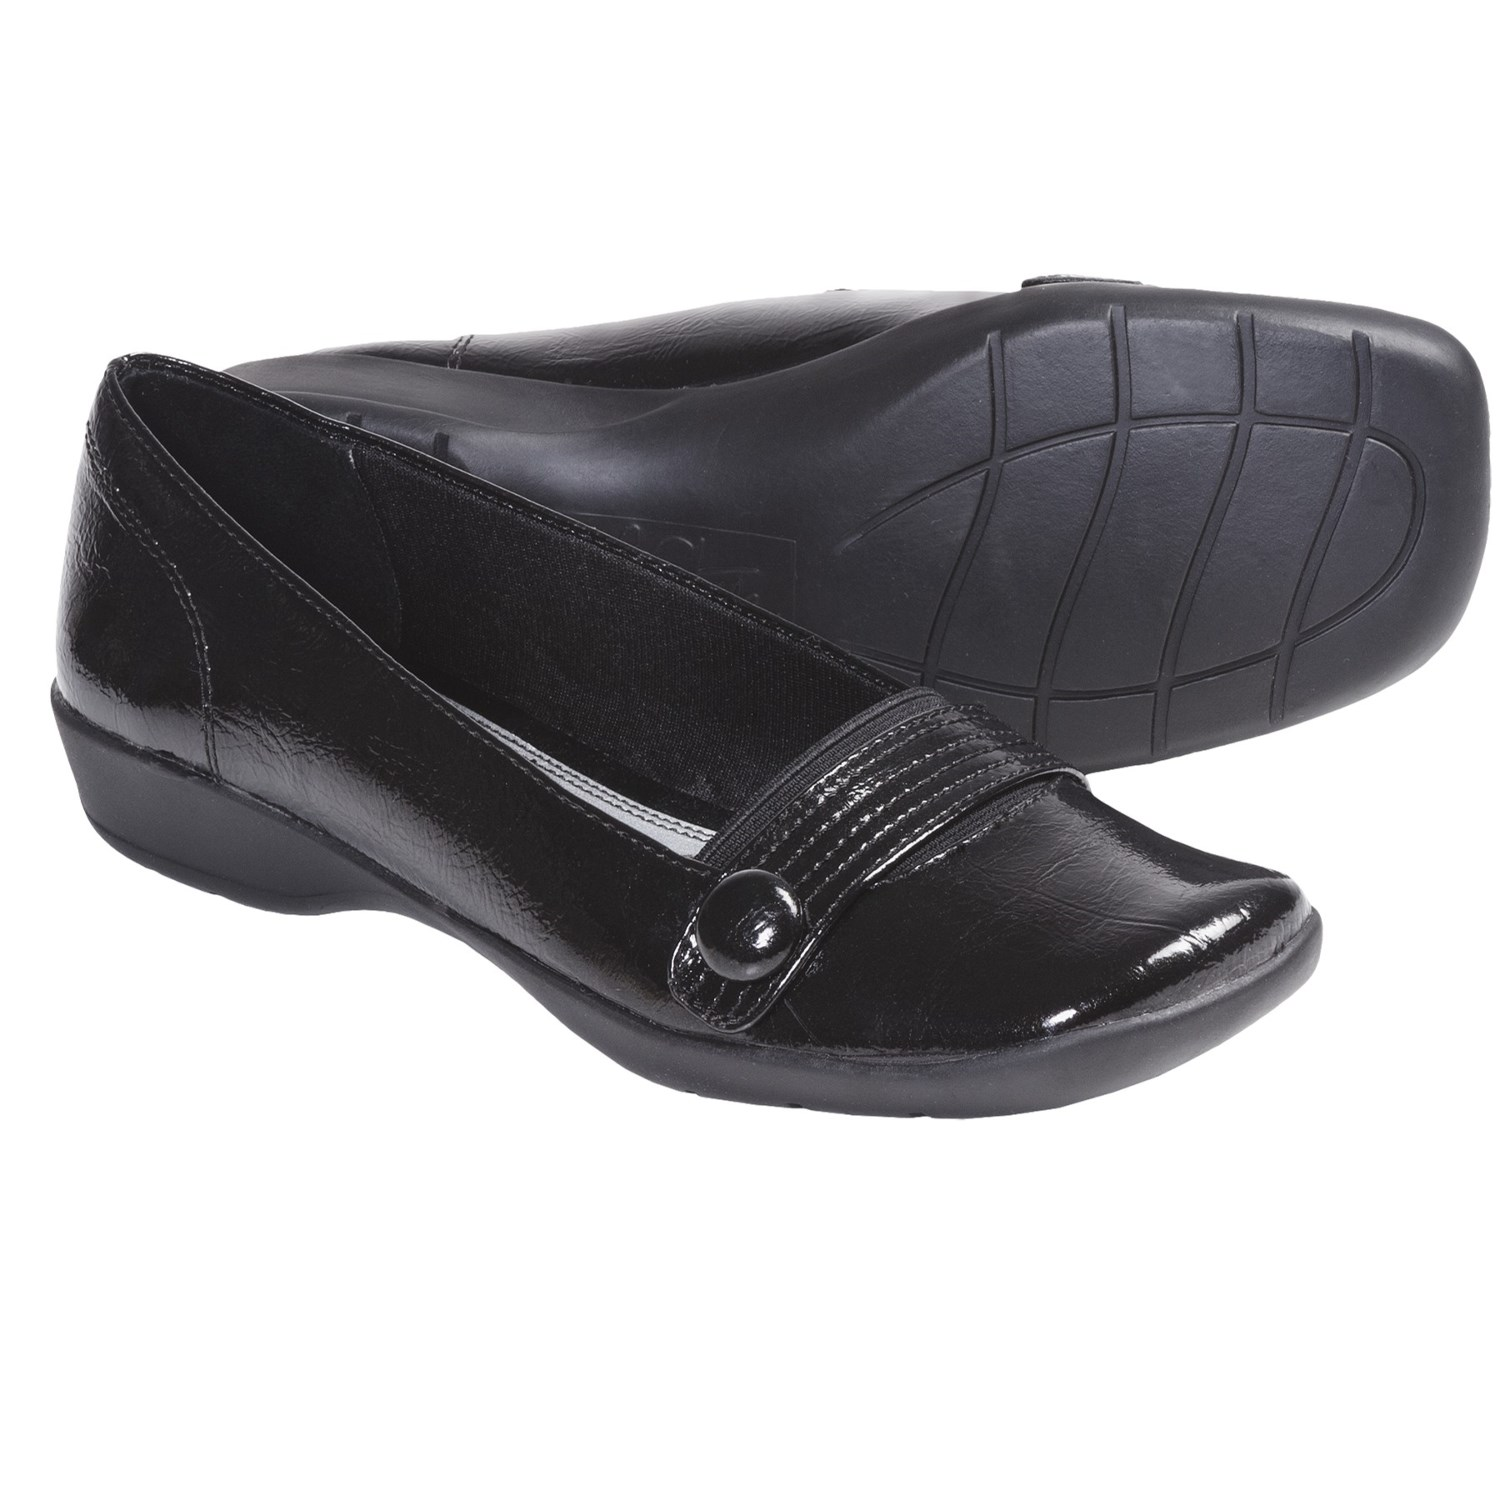 A wide variety of sizes and widths ensure that there is a LifeStride shoe for everyone. From Monday morning to Saturday night, LifeStride makes the looks for your life. The styles are hip and the value is always right. LifeStride women's shoes make fashion right.